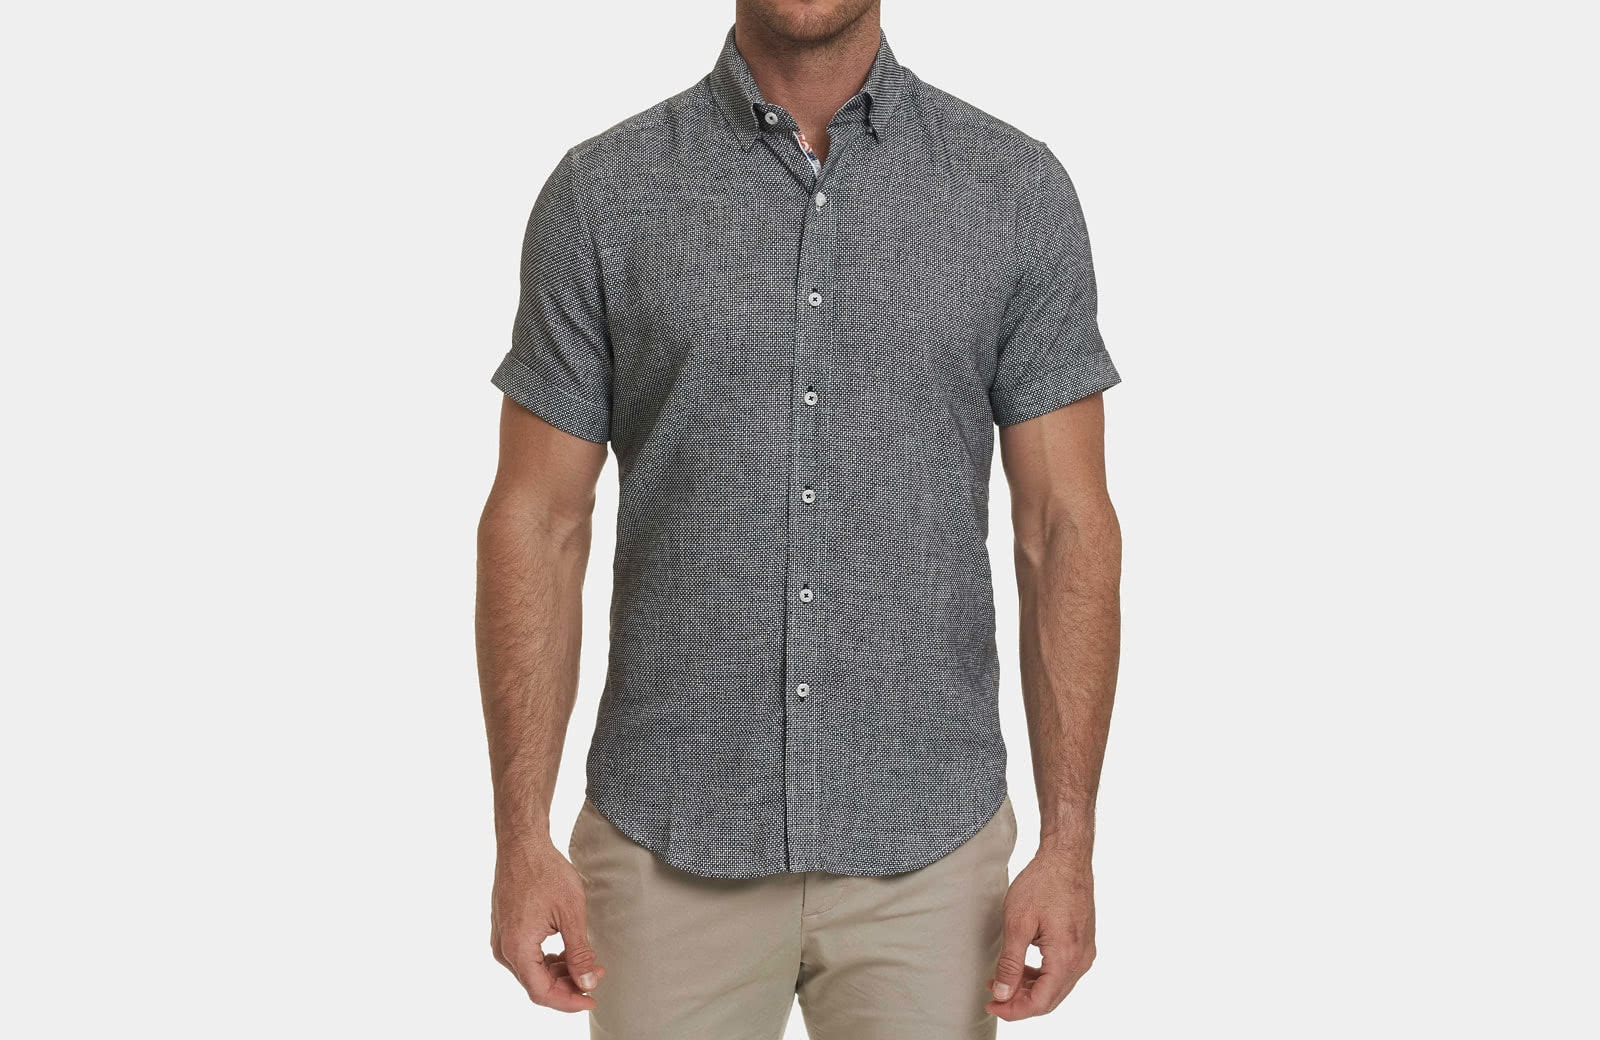 15 Best Men Designer Shirts From Robert Graham (2019 Updated)